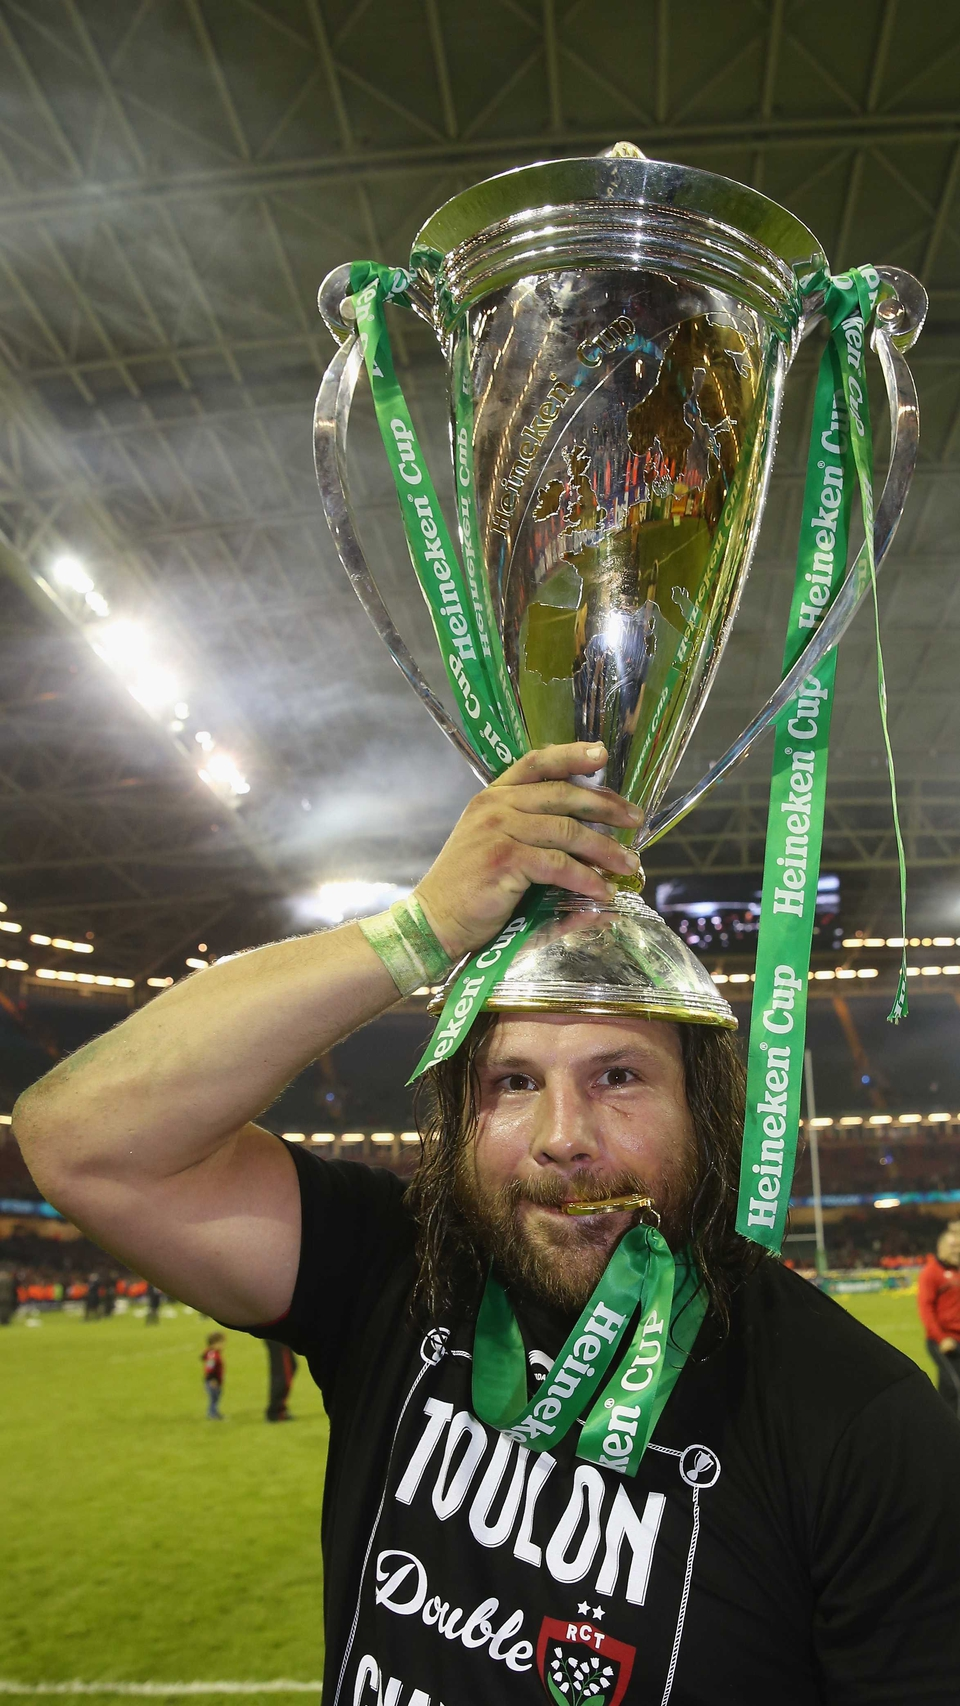 The inimitable Martin Castrogiovanni of Toulon celebrates after their victory during the Heineken Cup Final